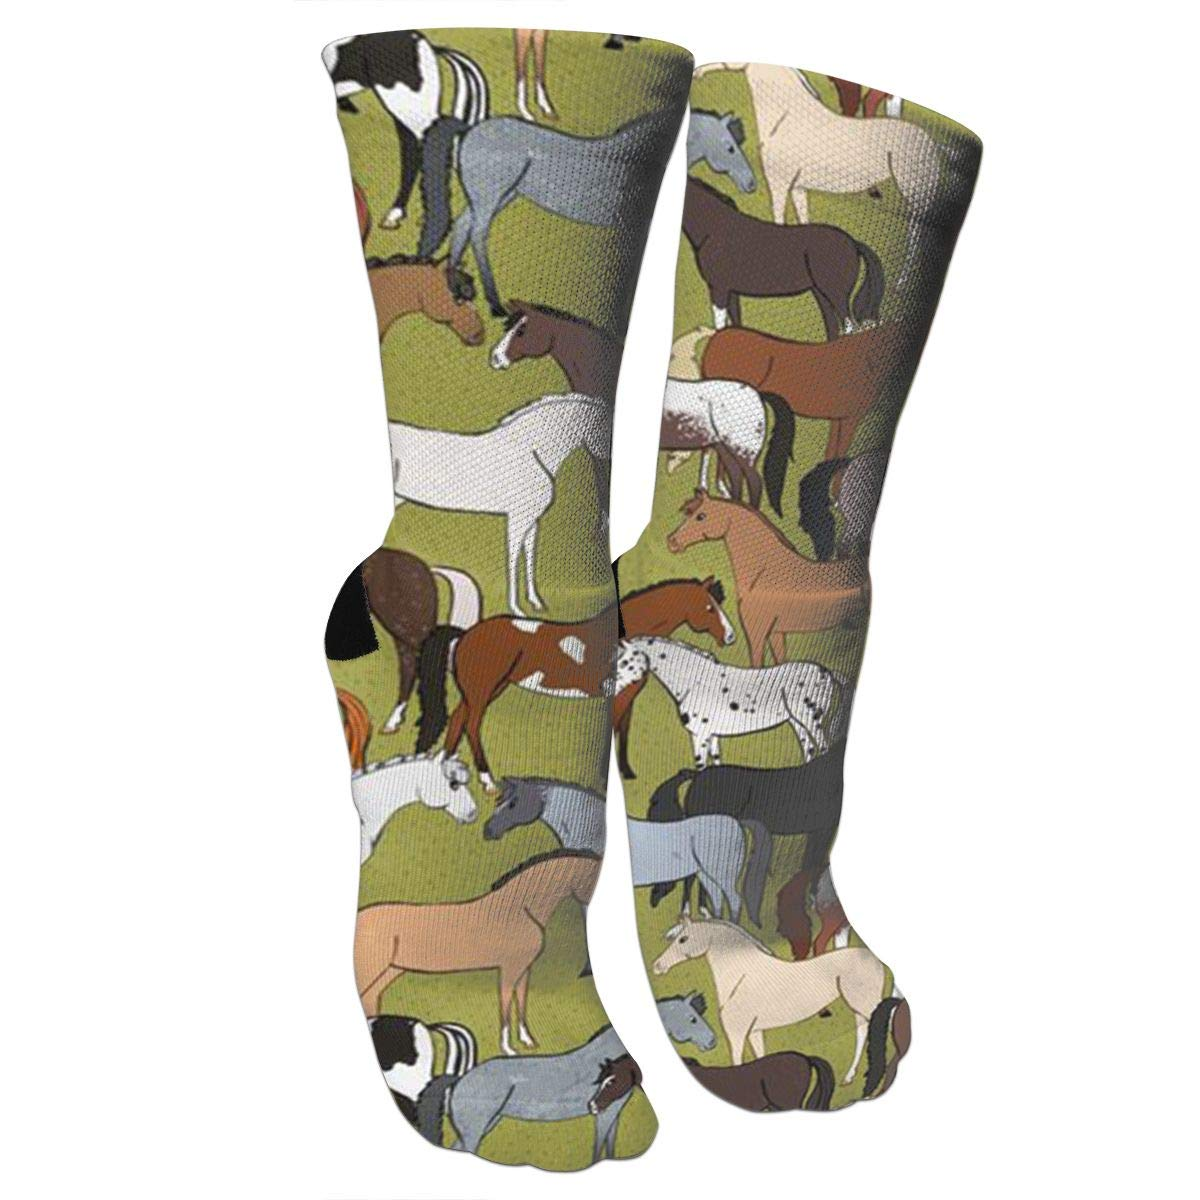 Colorful Cute Horse Casual Cotton Crew Socks Cute Funny Sock,great For Sports And Hiking